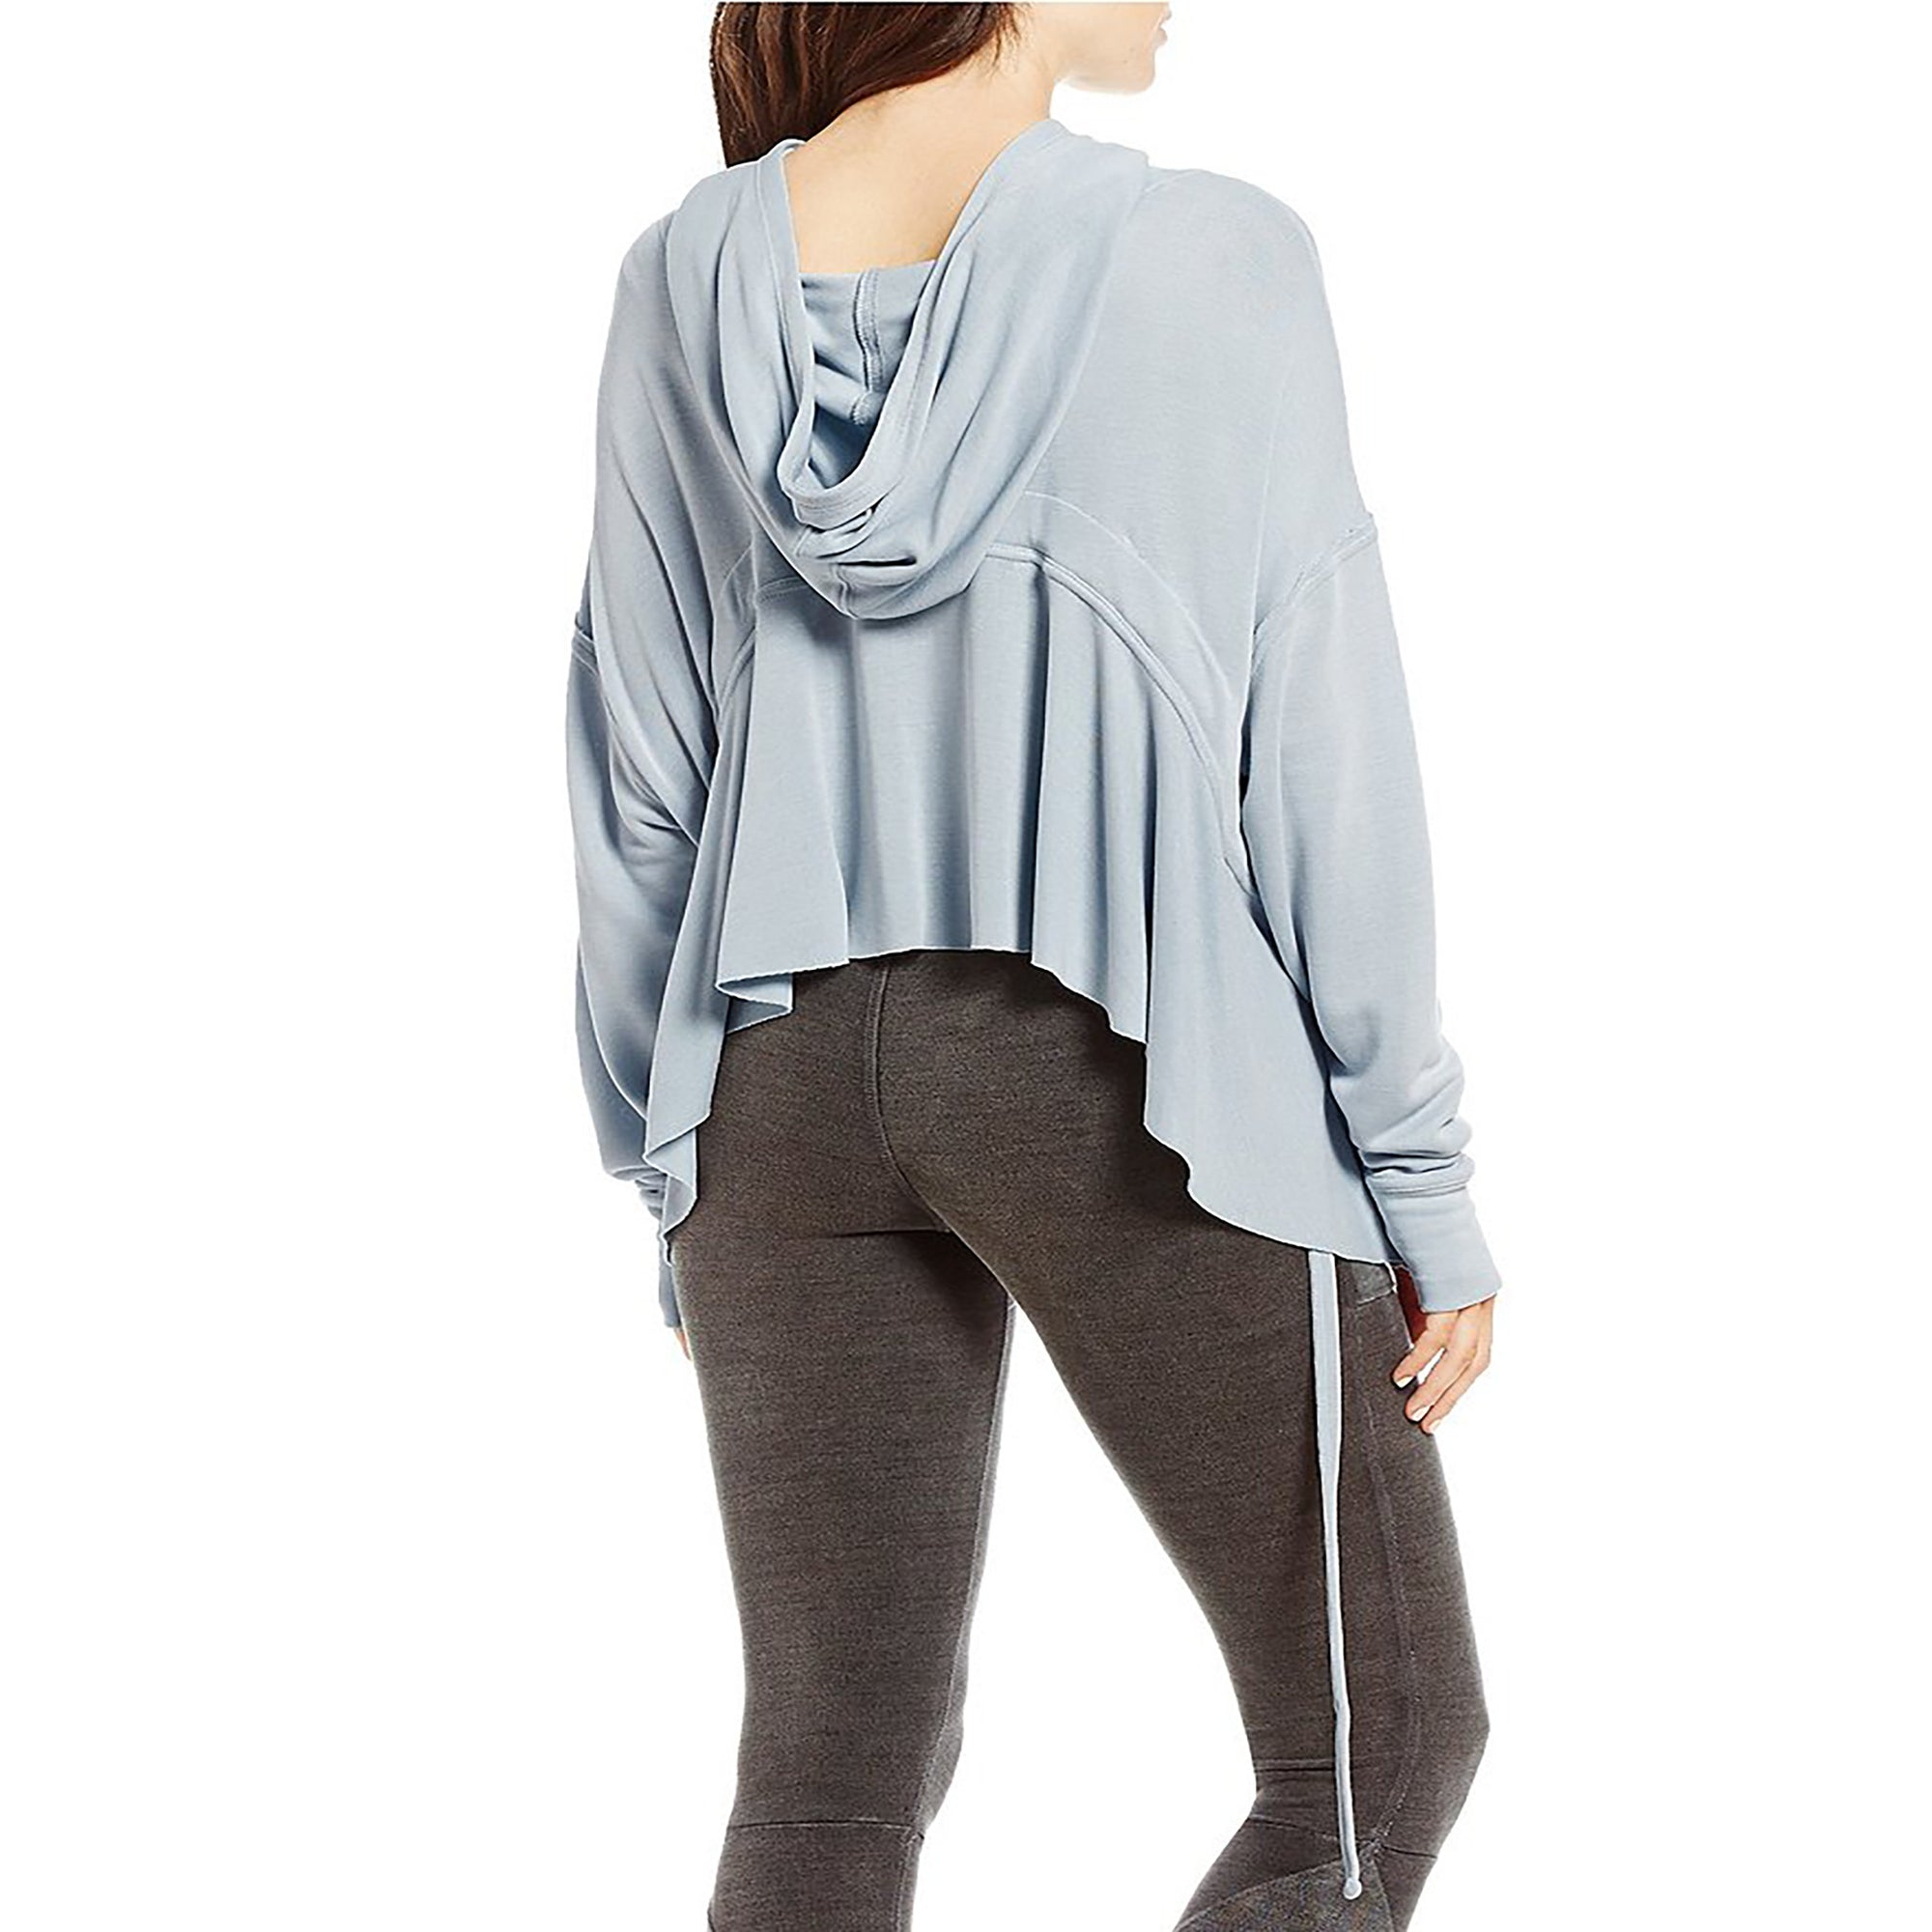 Ebb & Flow Free People Pullover Top with Hood